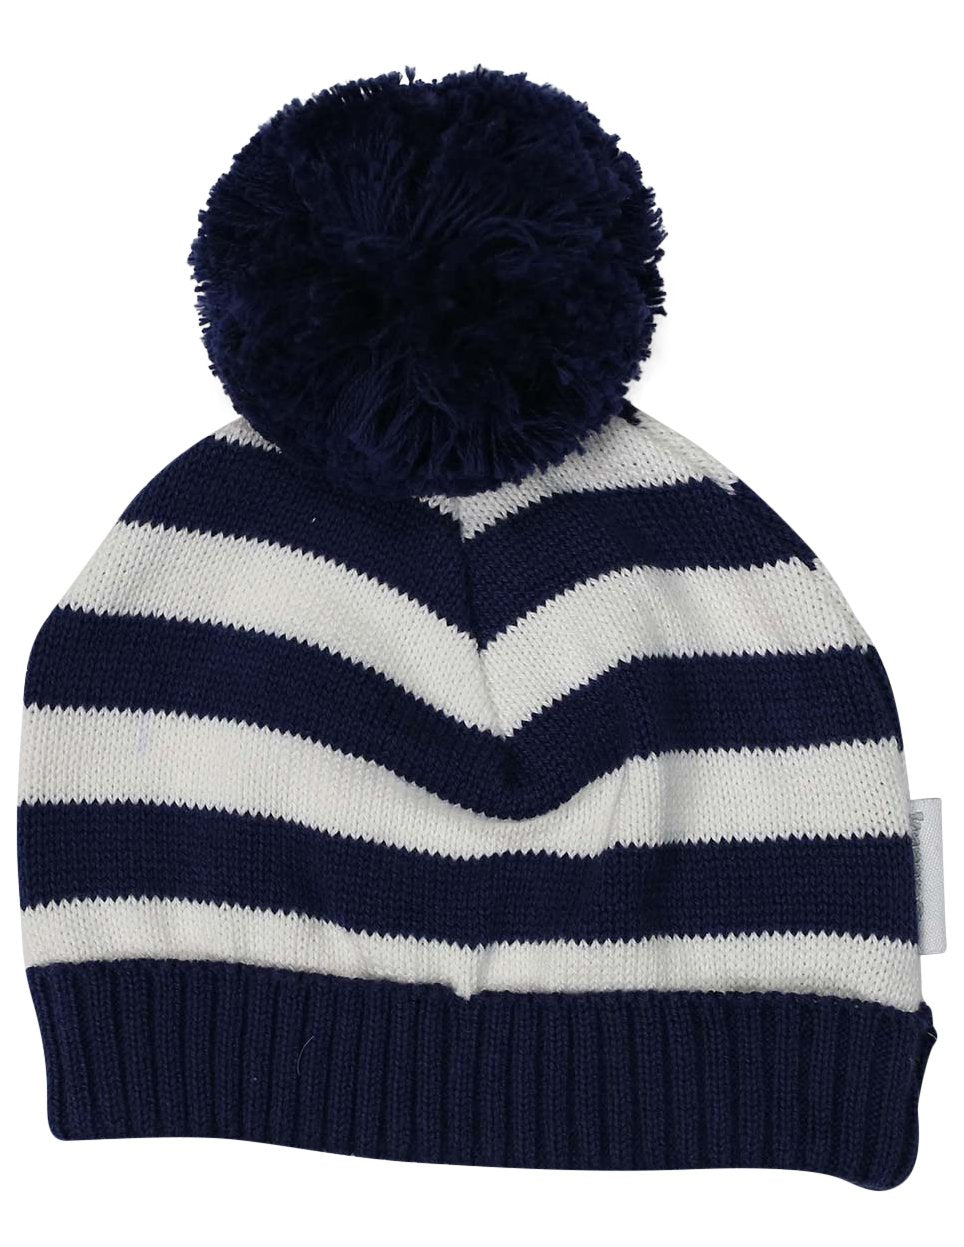 So Bunny Stripe Knit Beanie | Navy